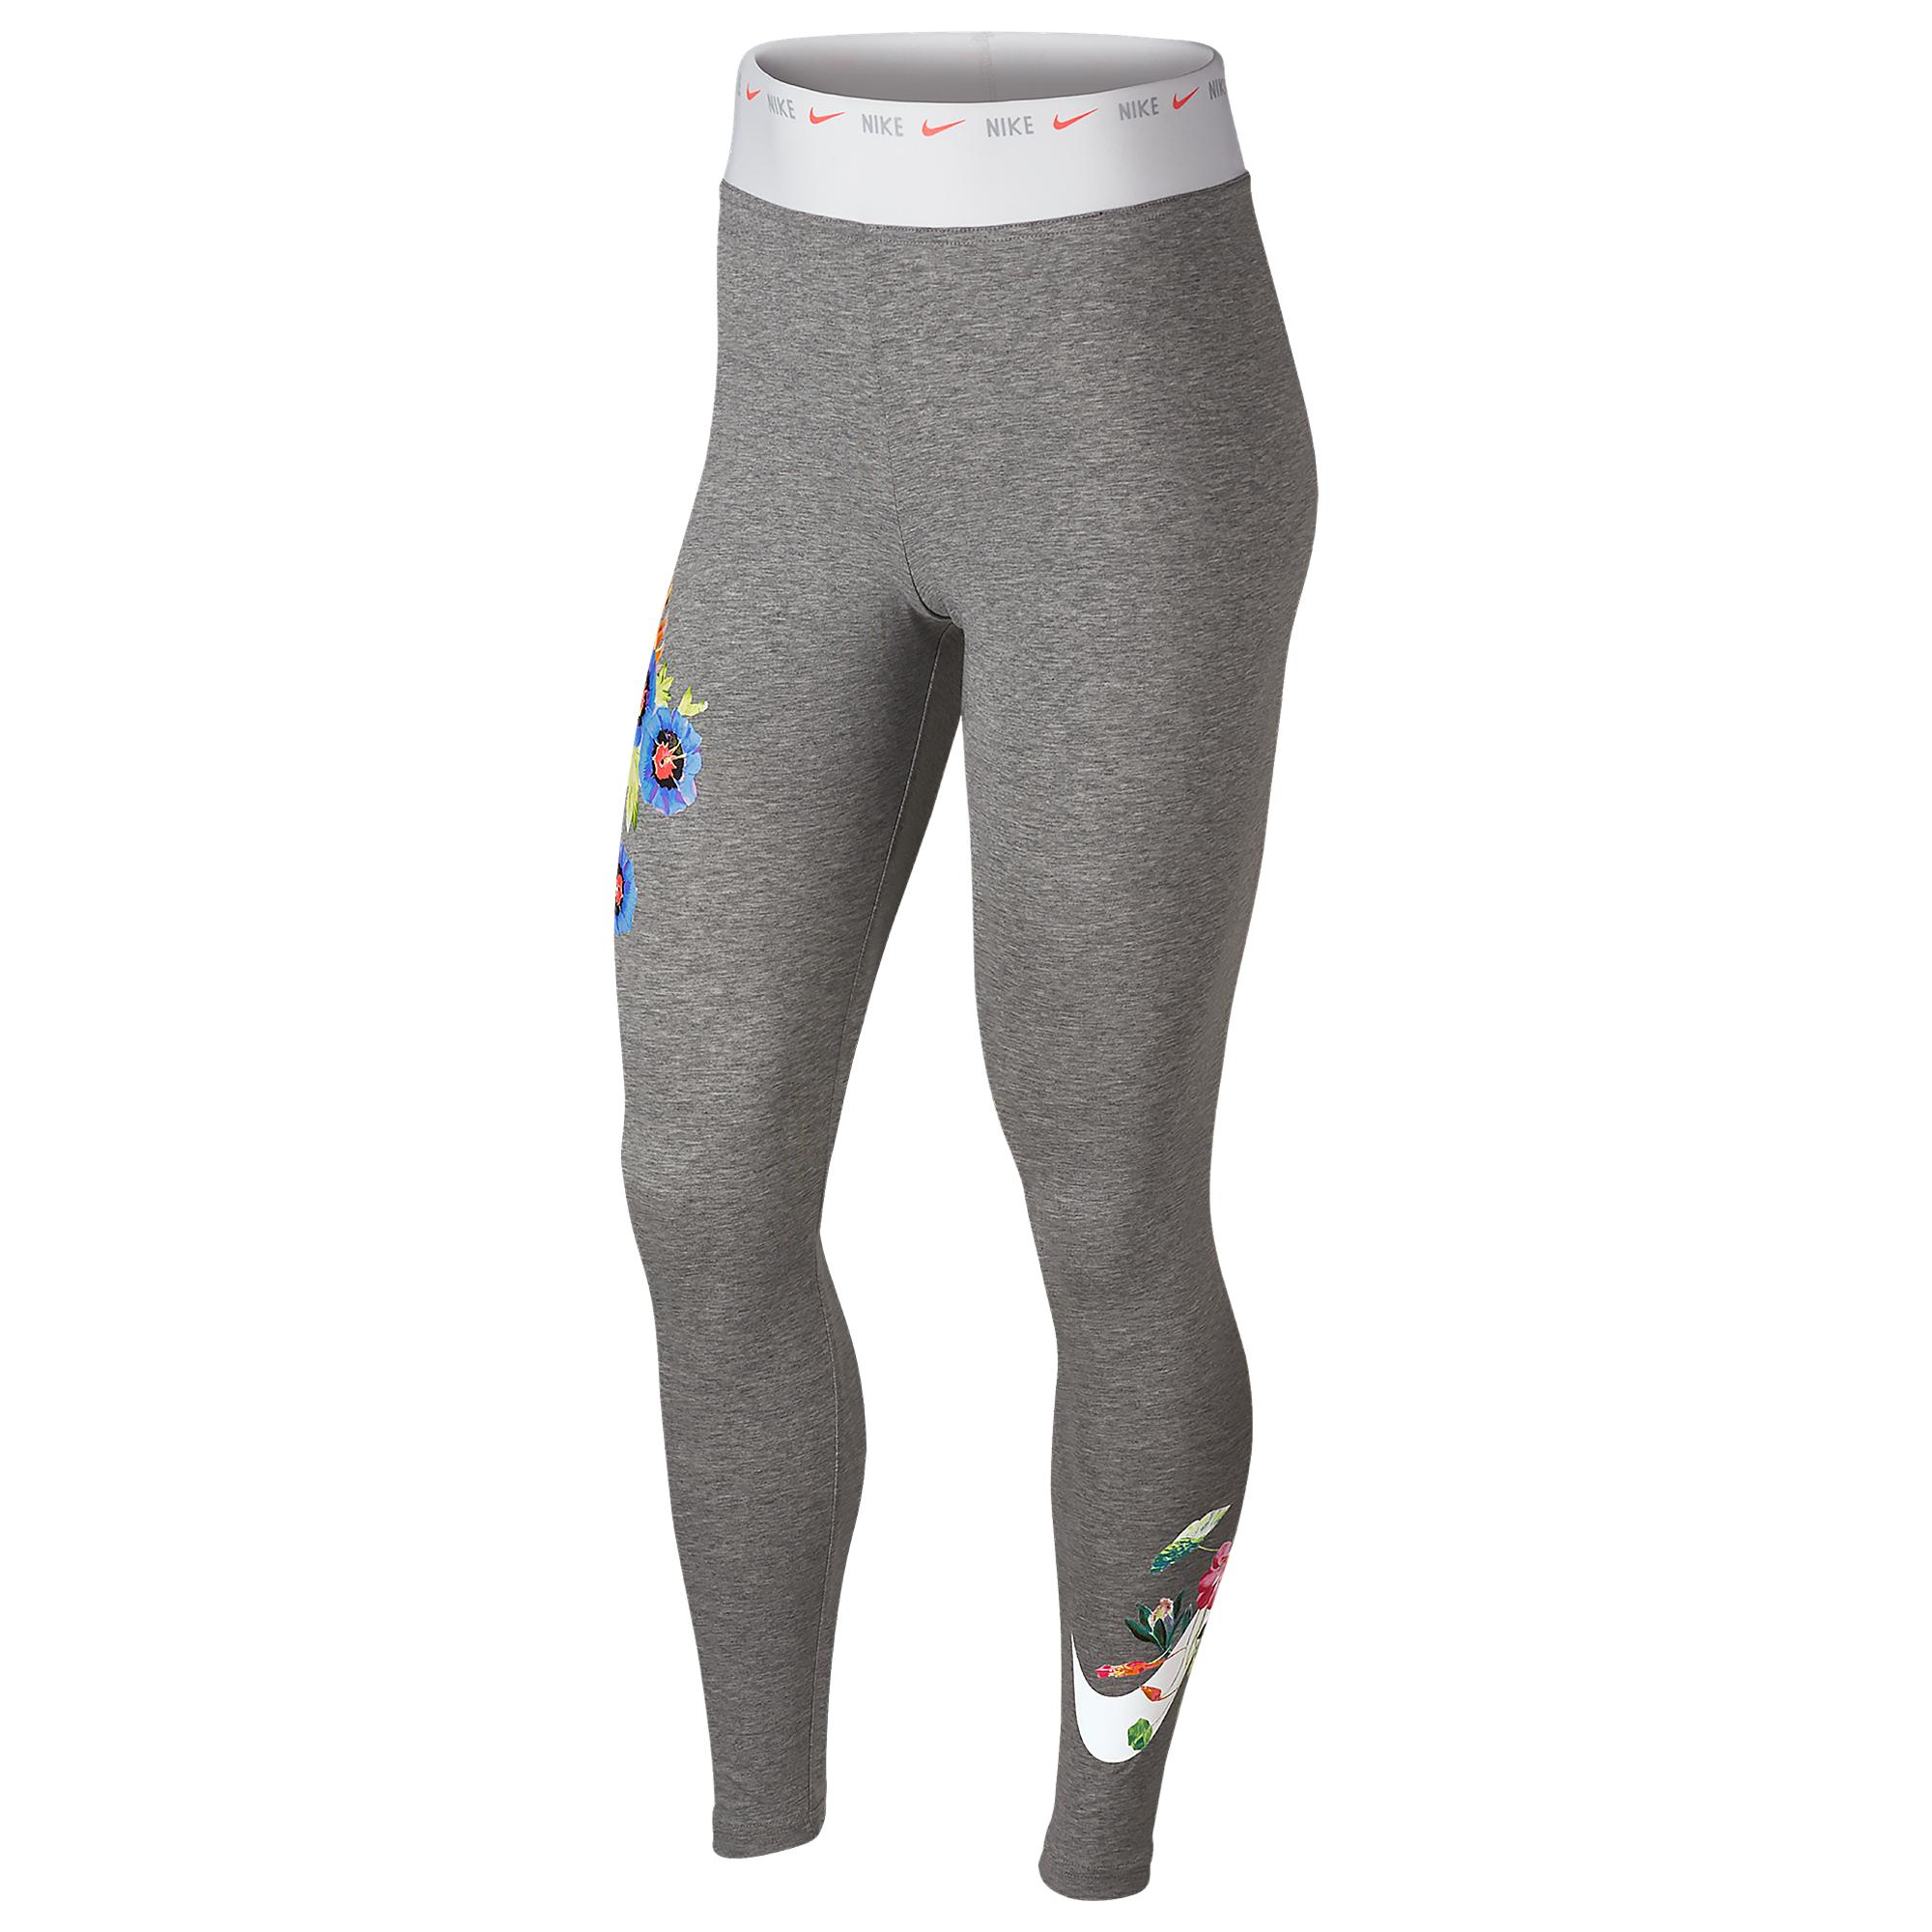 images détaillées 7f37a 36f7a Nike Womens Ultra Femme Leggings in Gray - Lyst